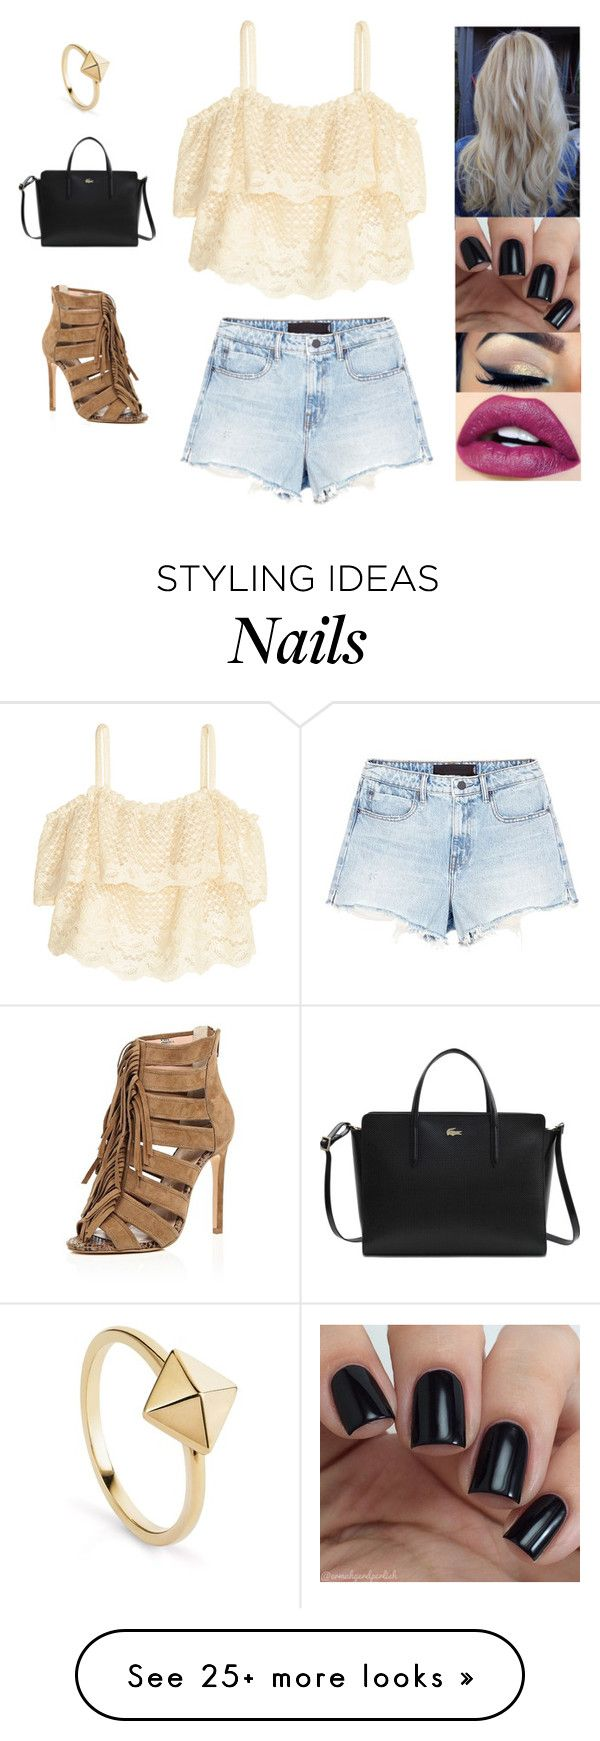 """Untitled #4057"" by sigalv on Polyvore featuring H&M, Alexander Wang, Lacoste and River Island"